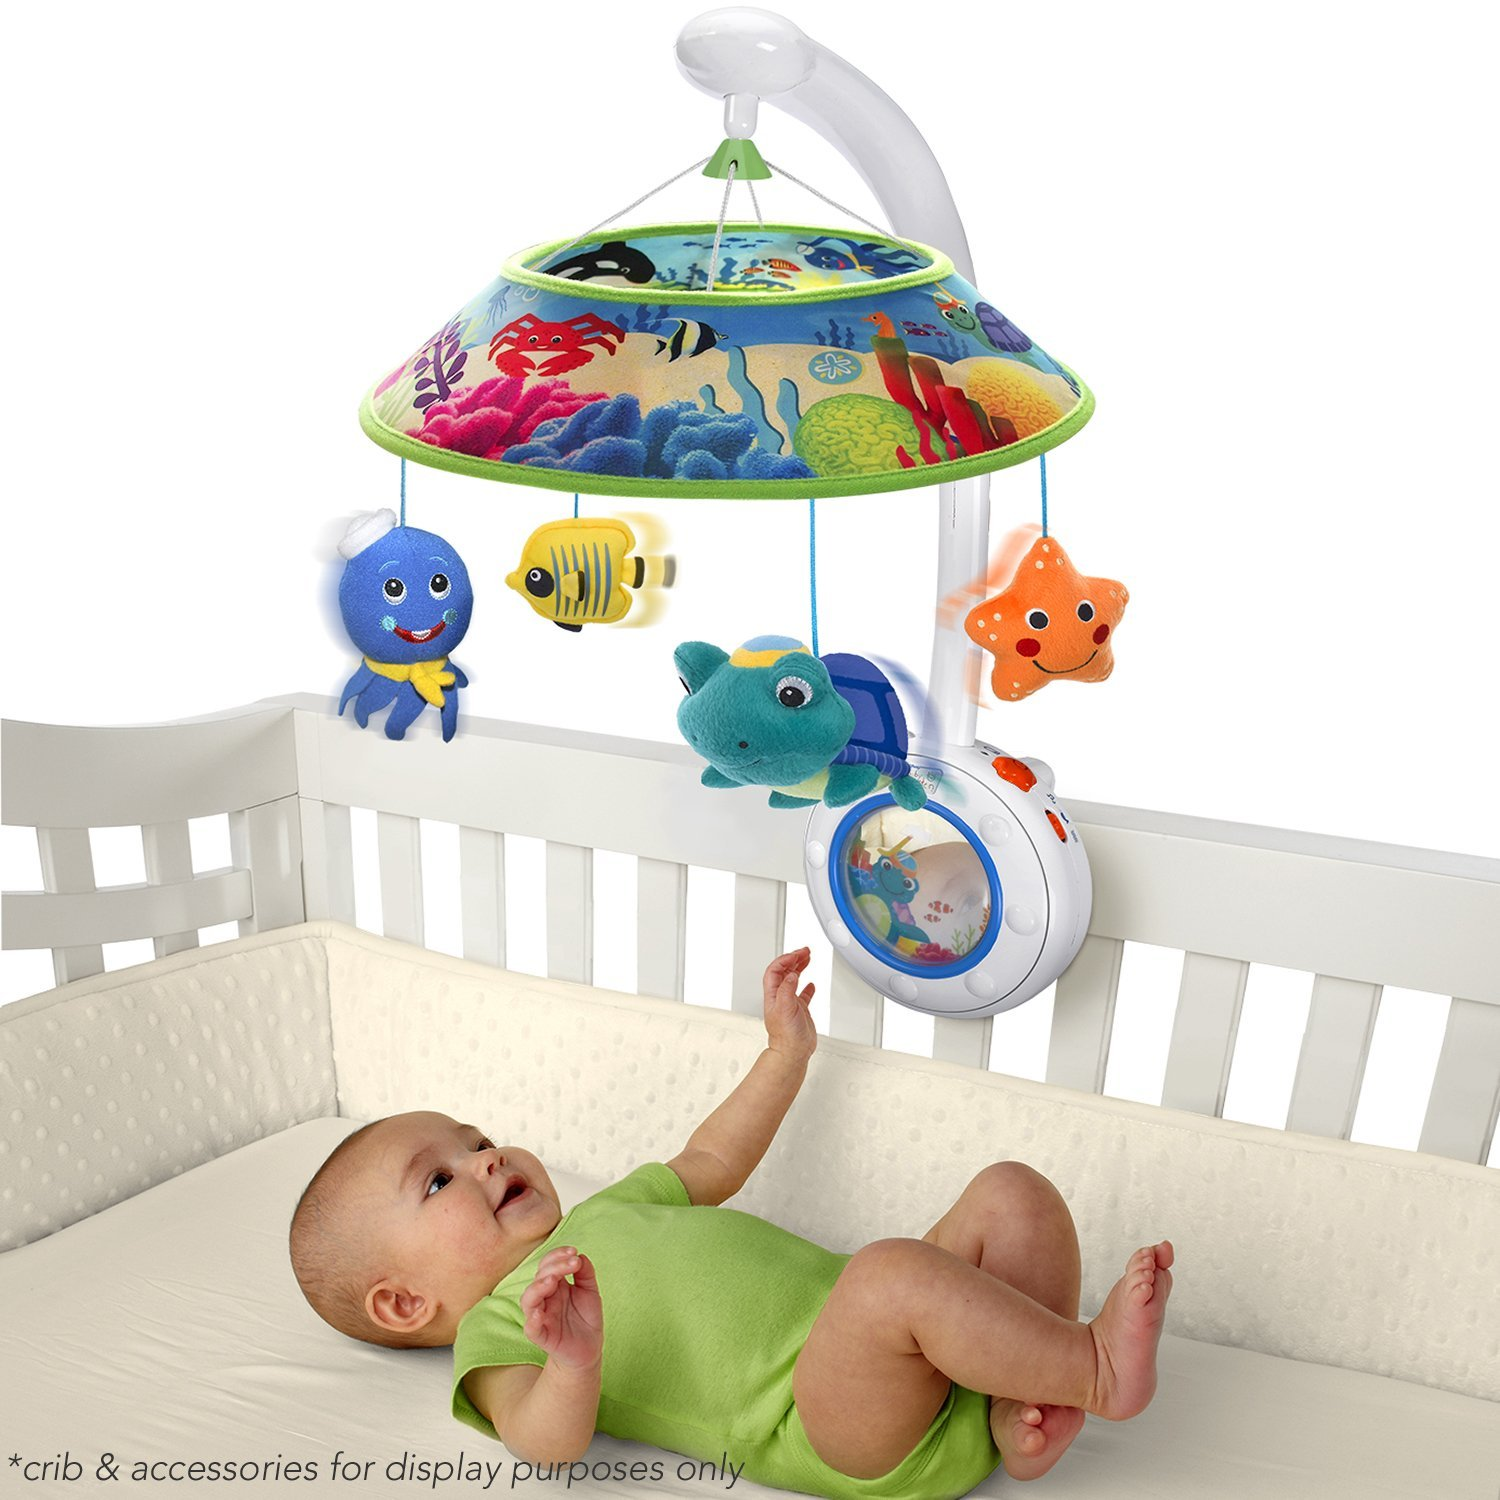 articles the for mobile find cribs format tiny great mobiles thing baby a nicu every